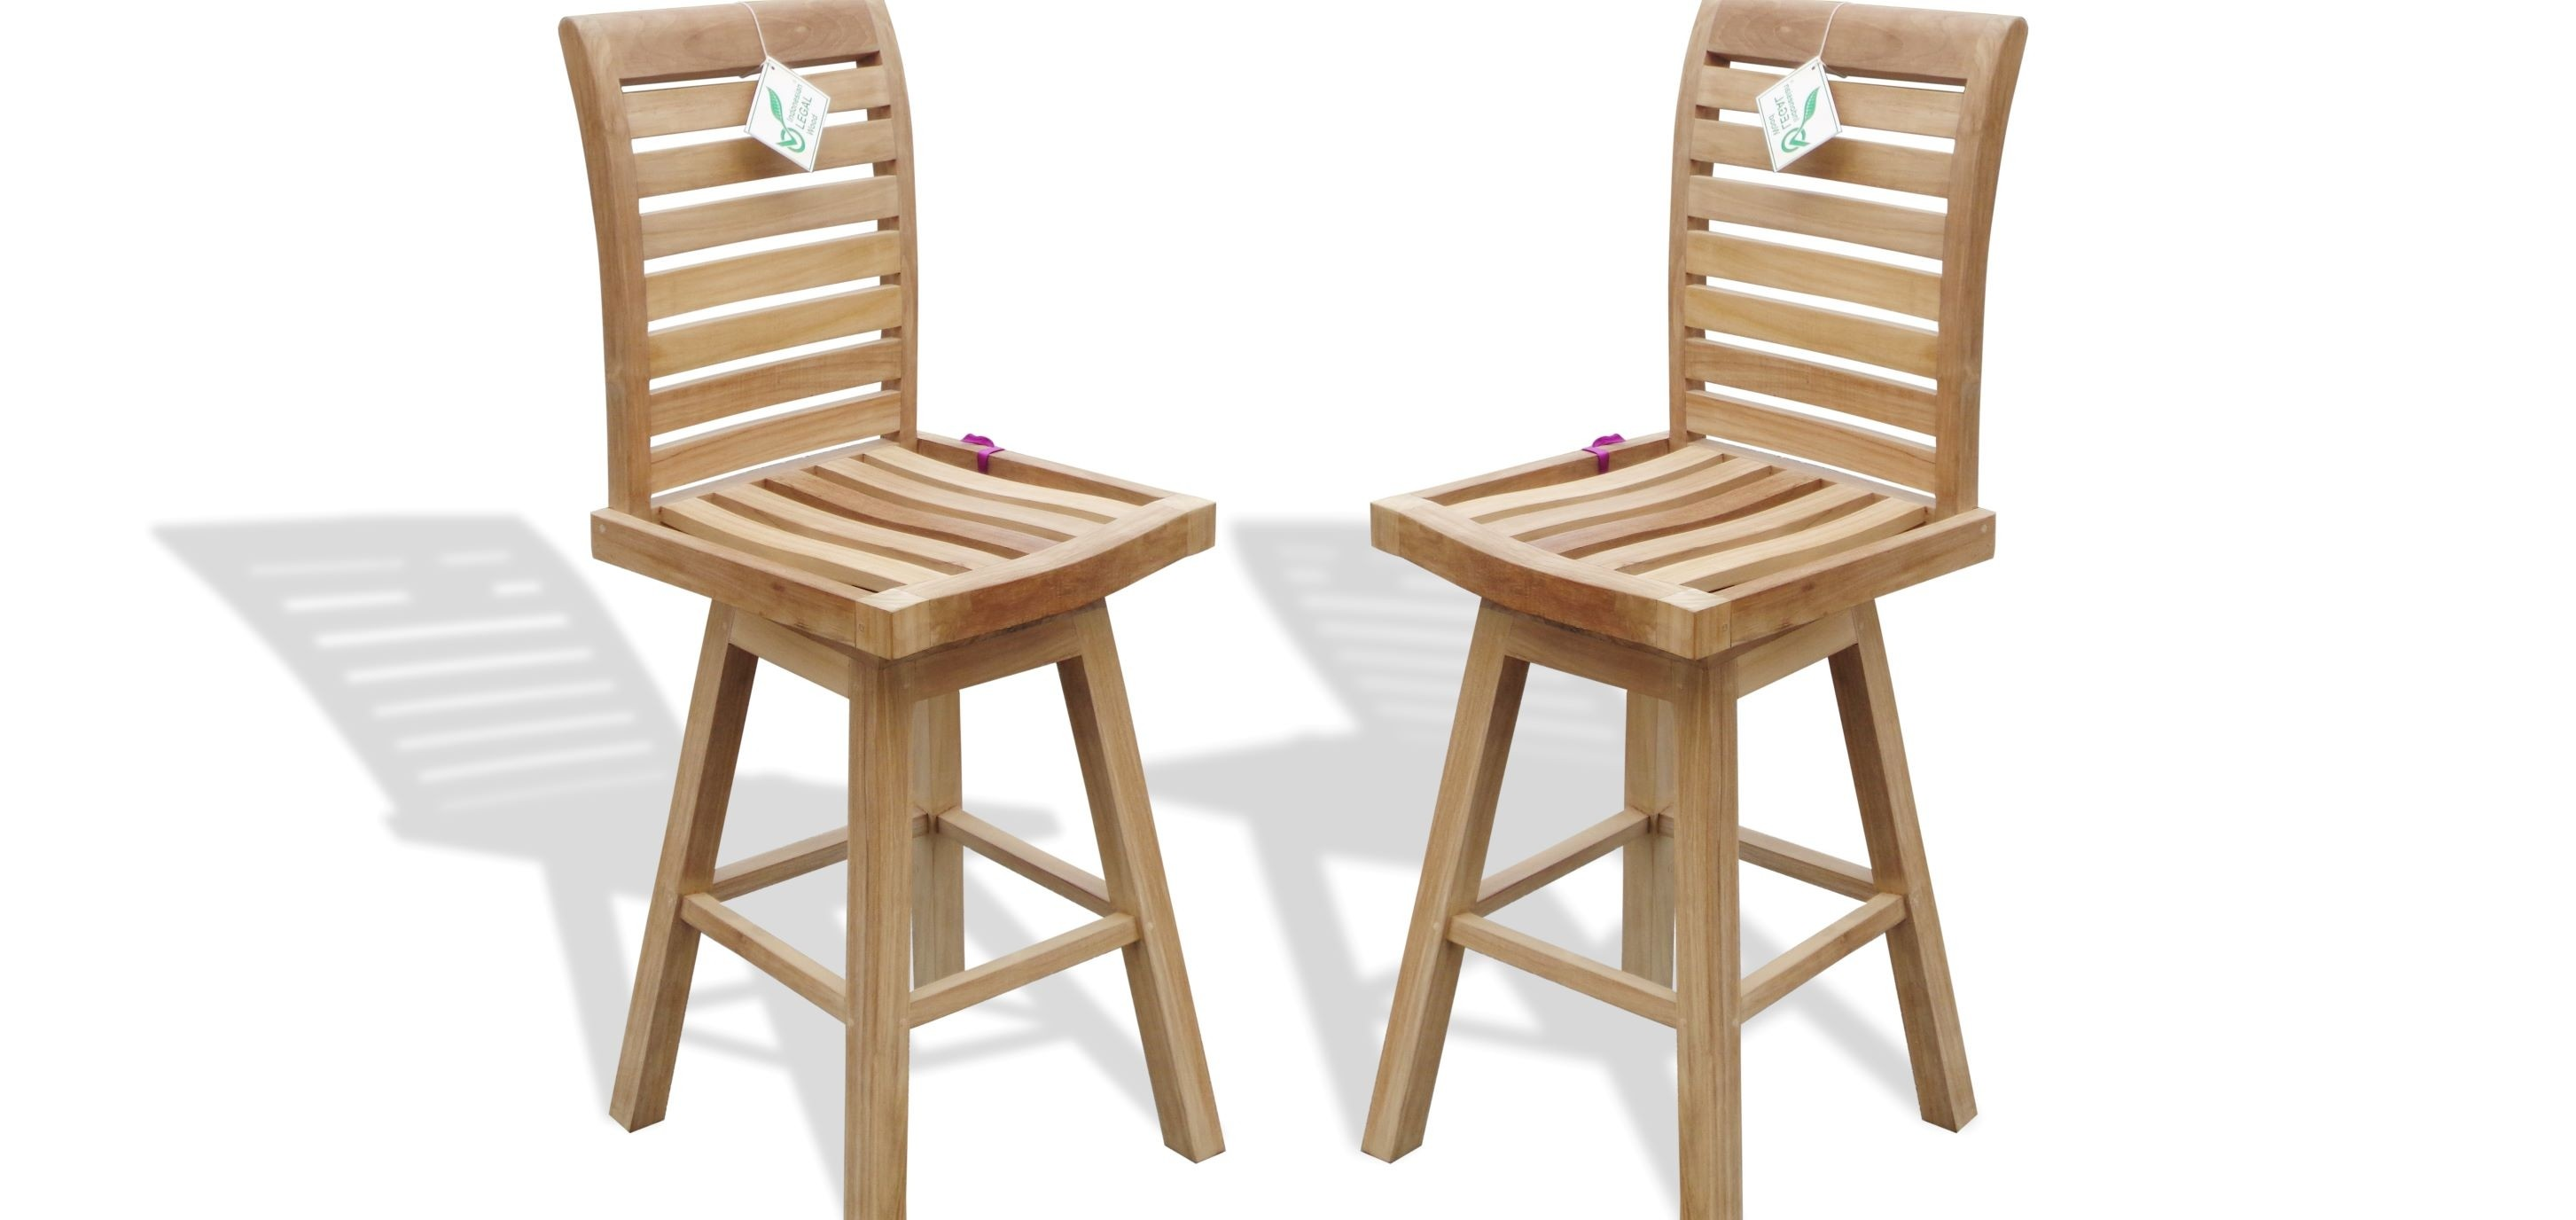 St. Moritz Teak Armless Swivel Bar Chairs. 2 Pack